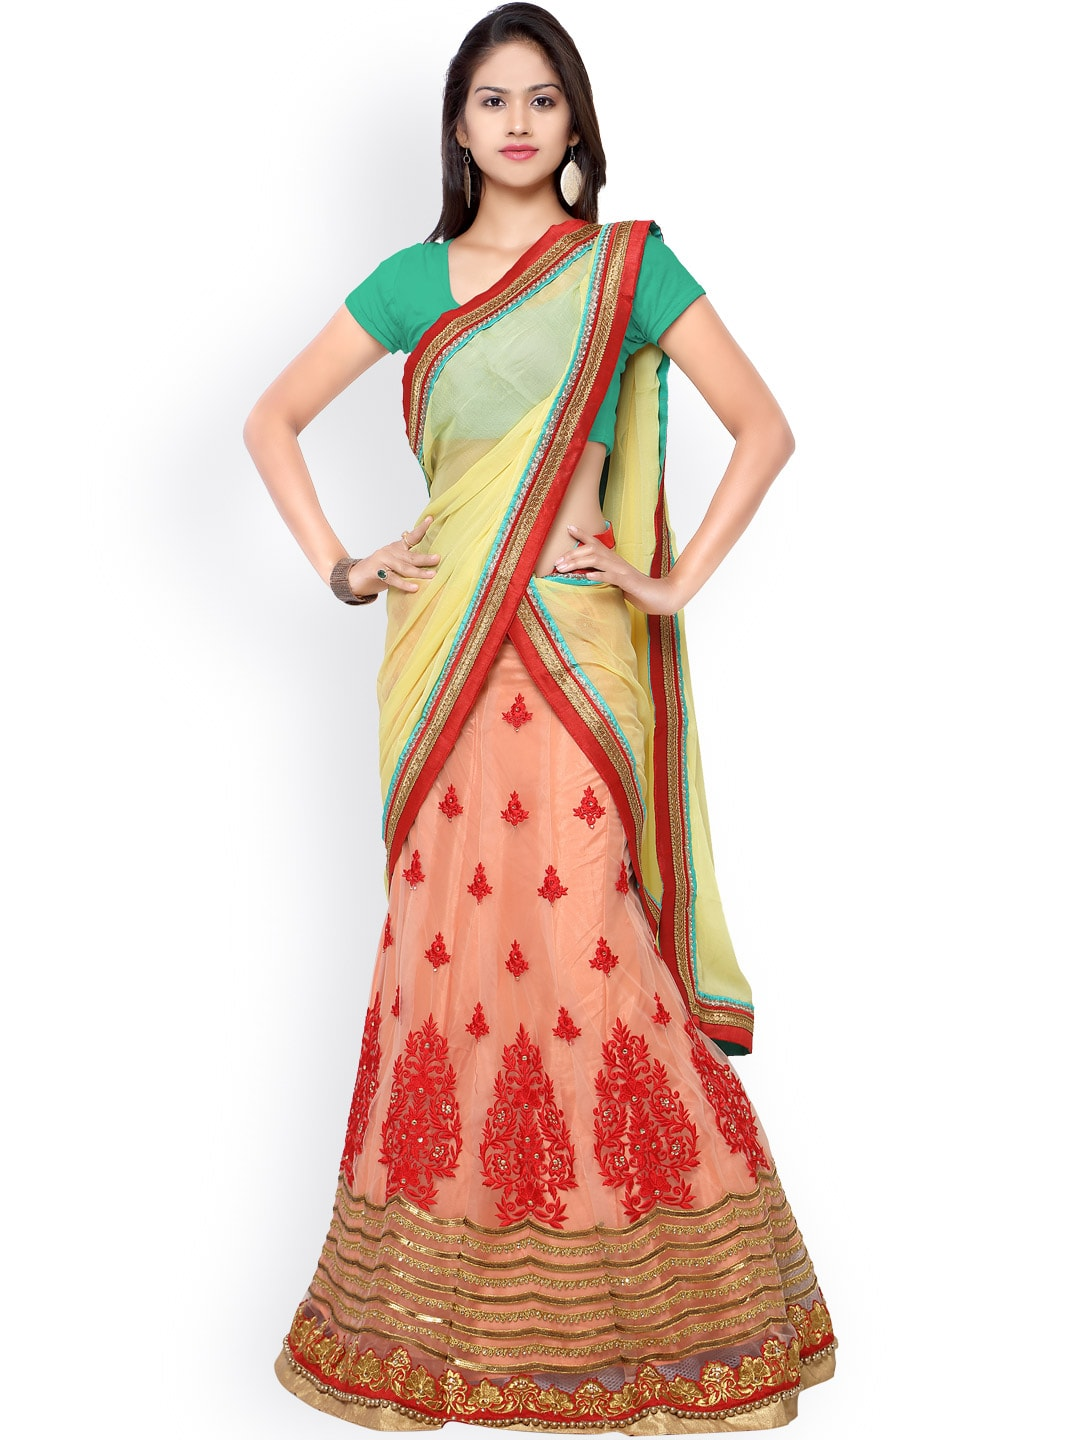 Touch Trends Green & Peach-Coloured Embroidered Semi-Stitched Lehenga Choli with Dupatta image